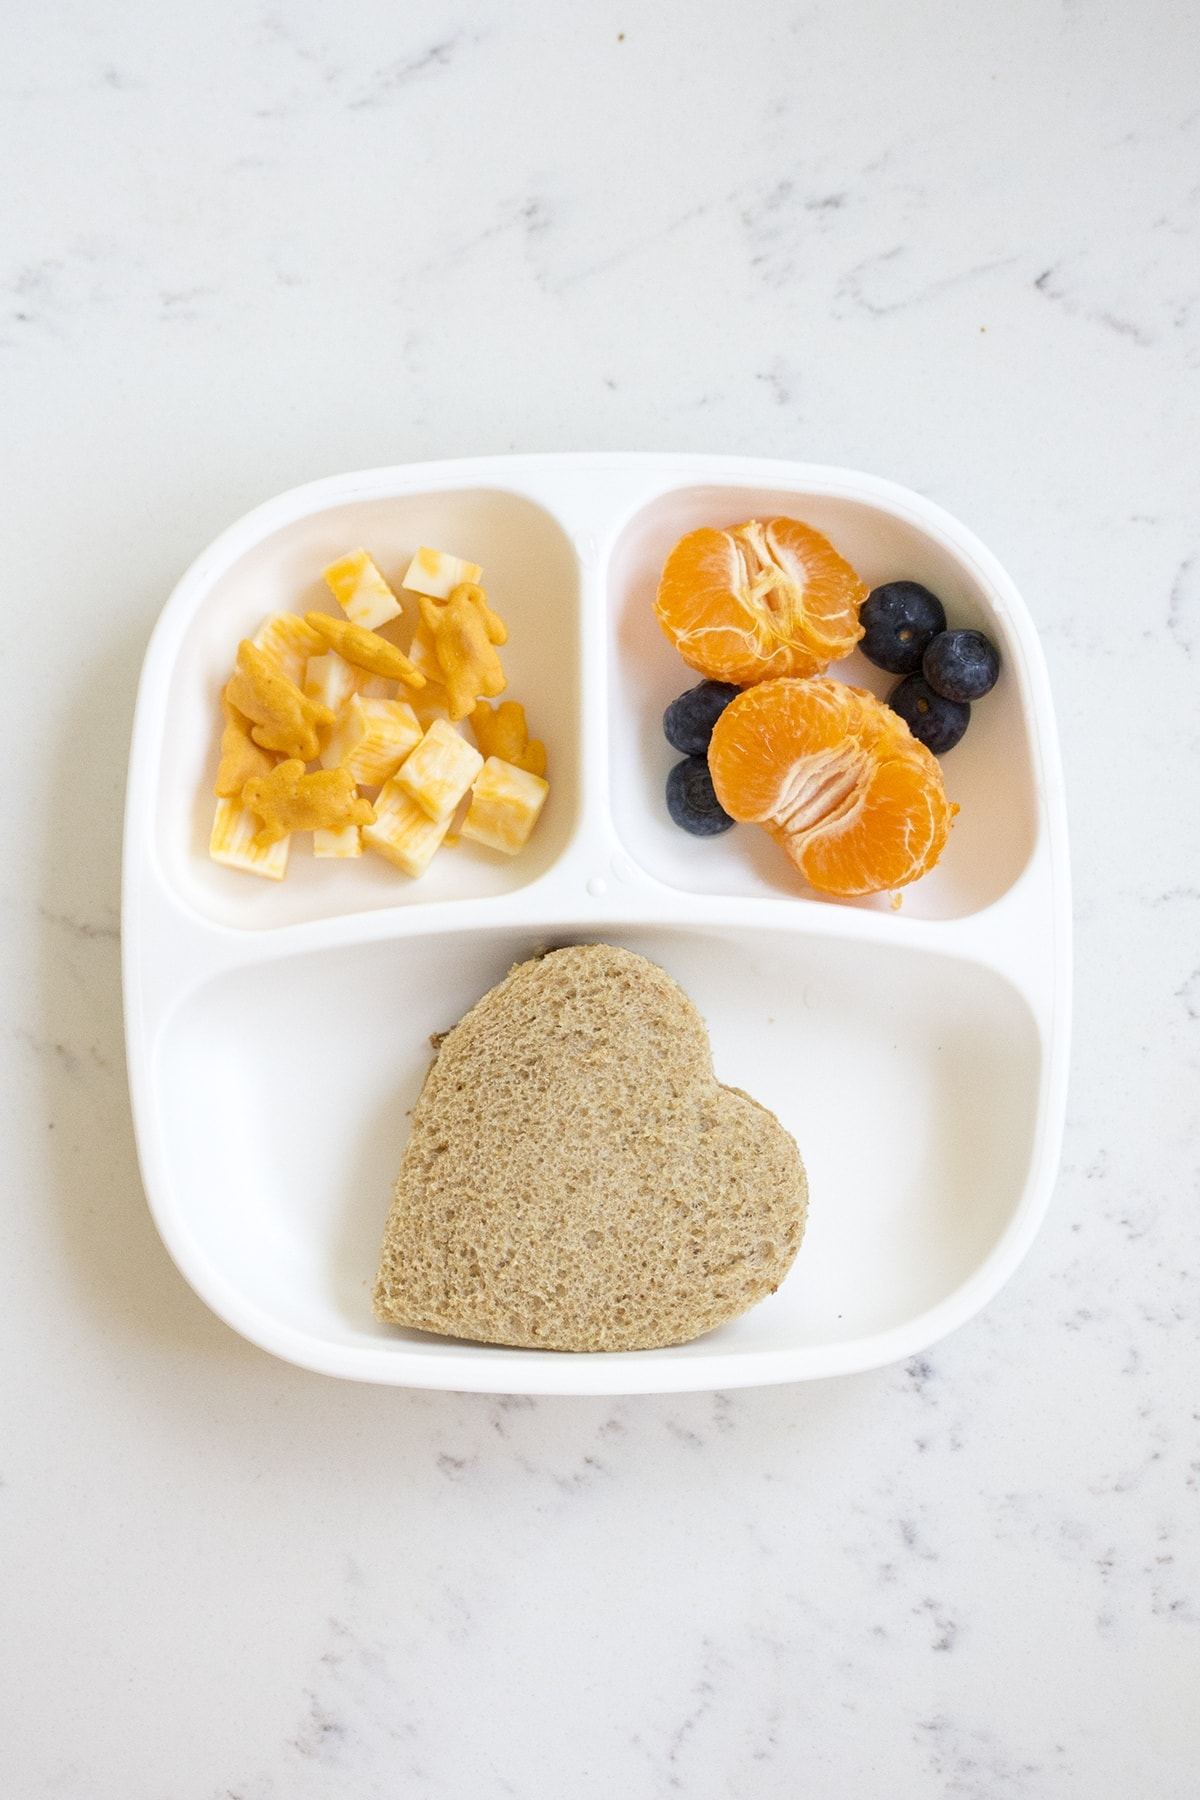 Toddler Meals: What I fed the Twins